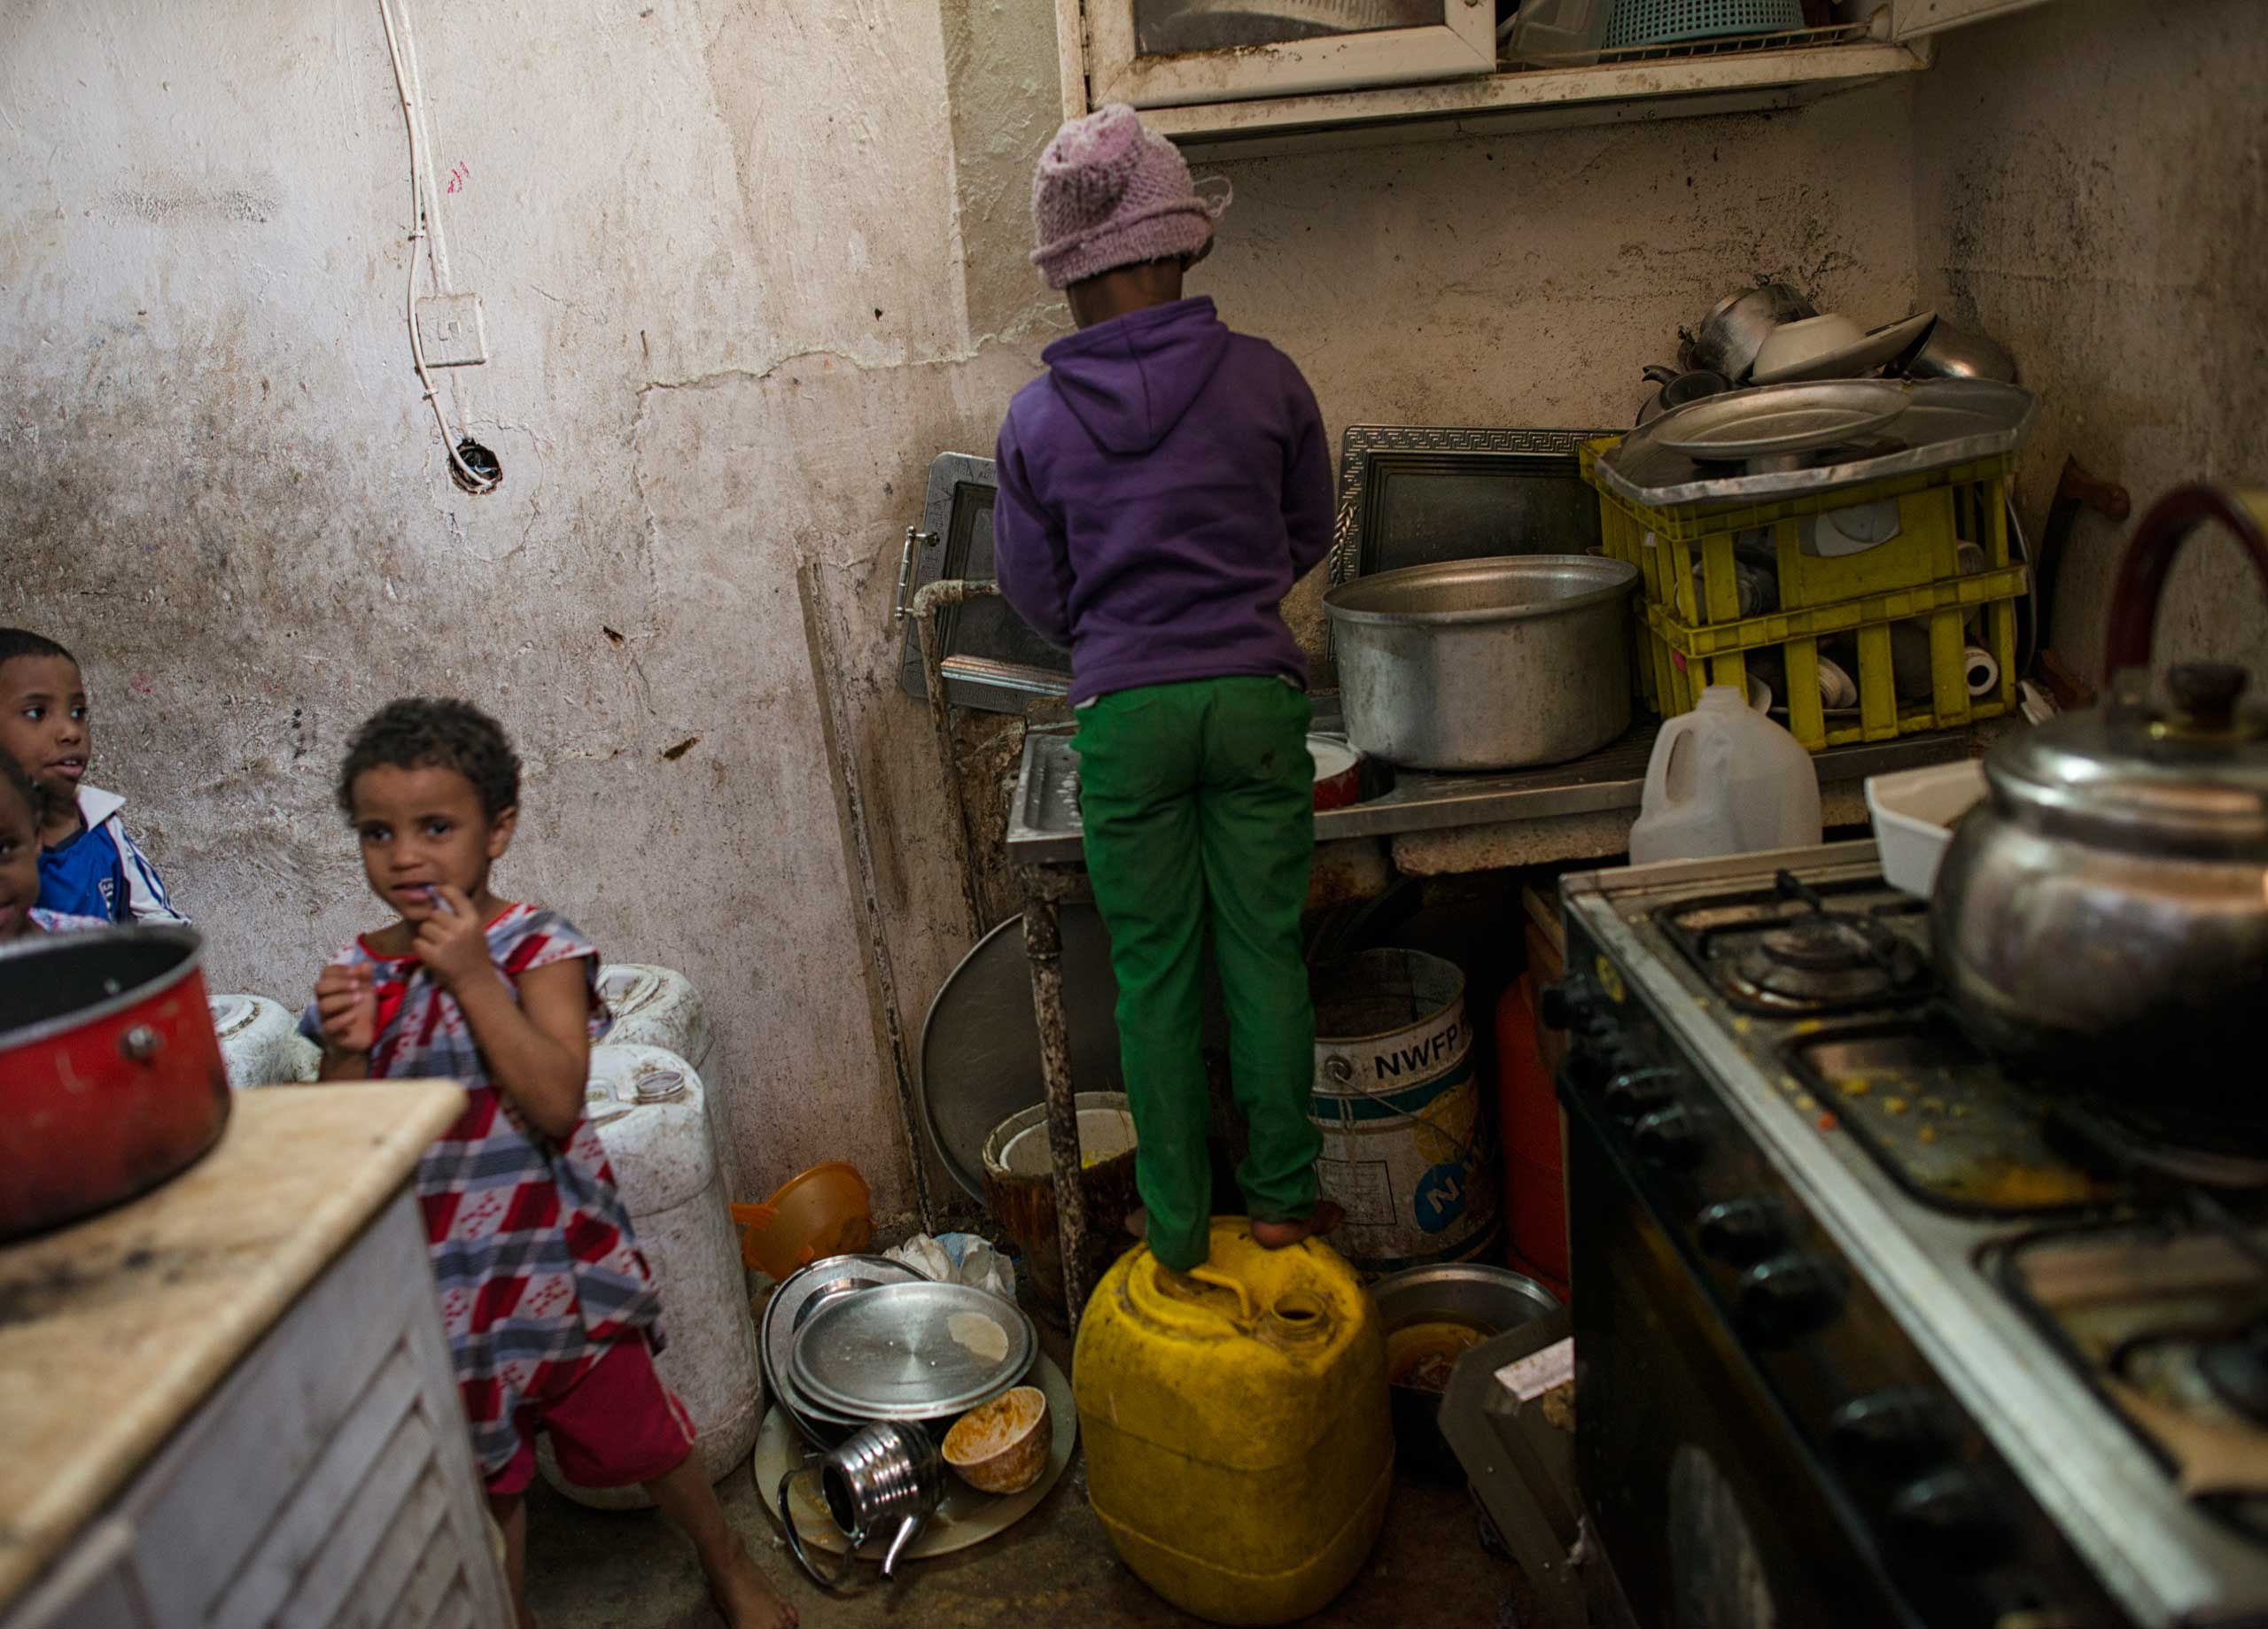 Saudi children do the dishes in a home in South Riyadh.